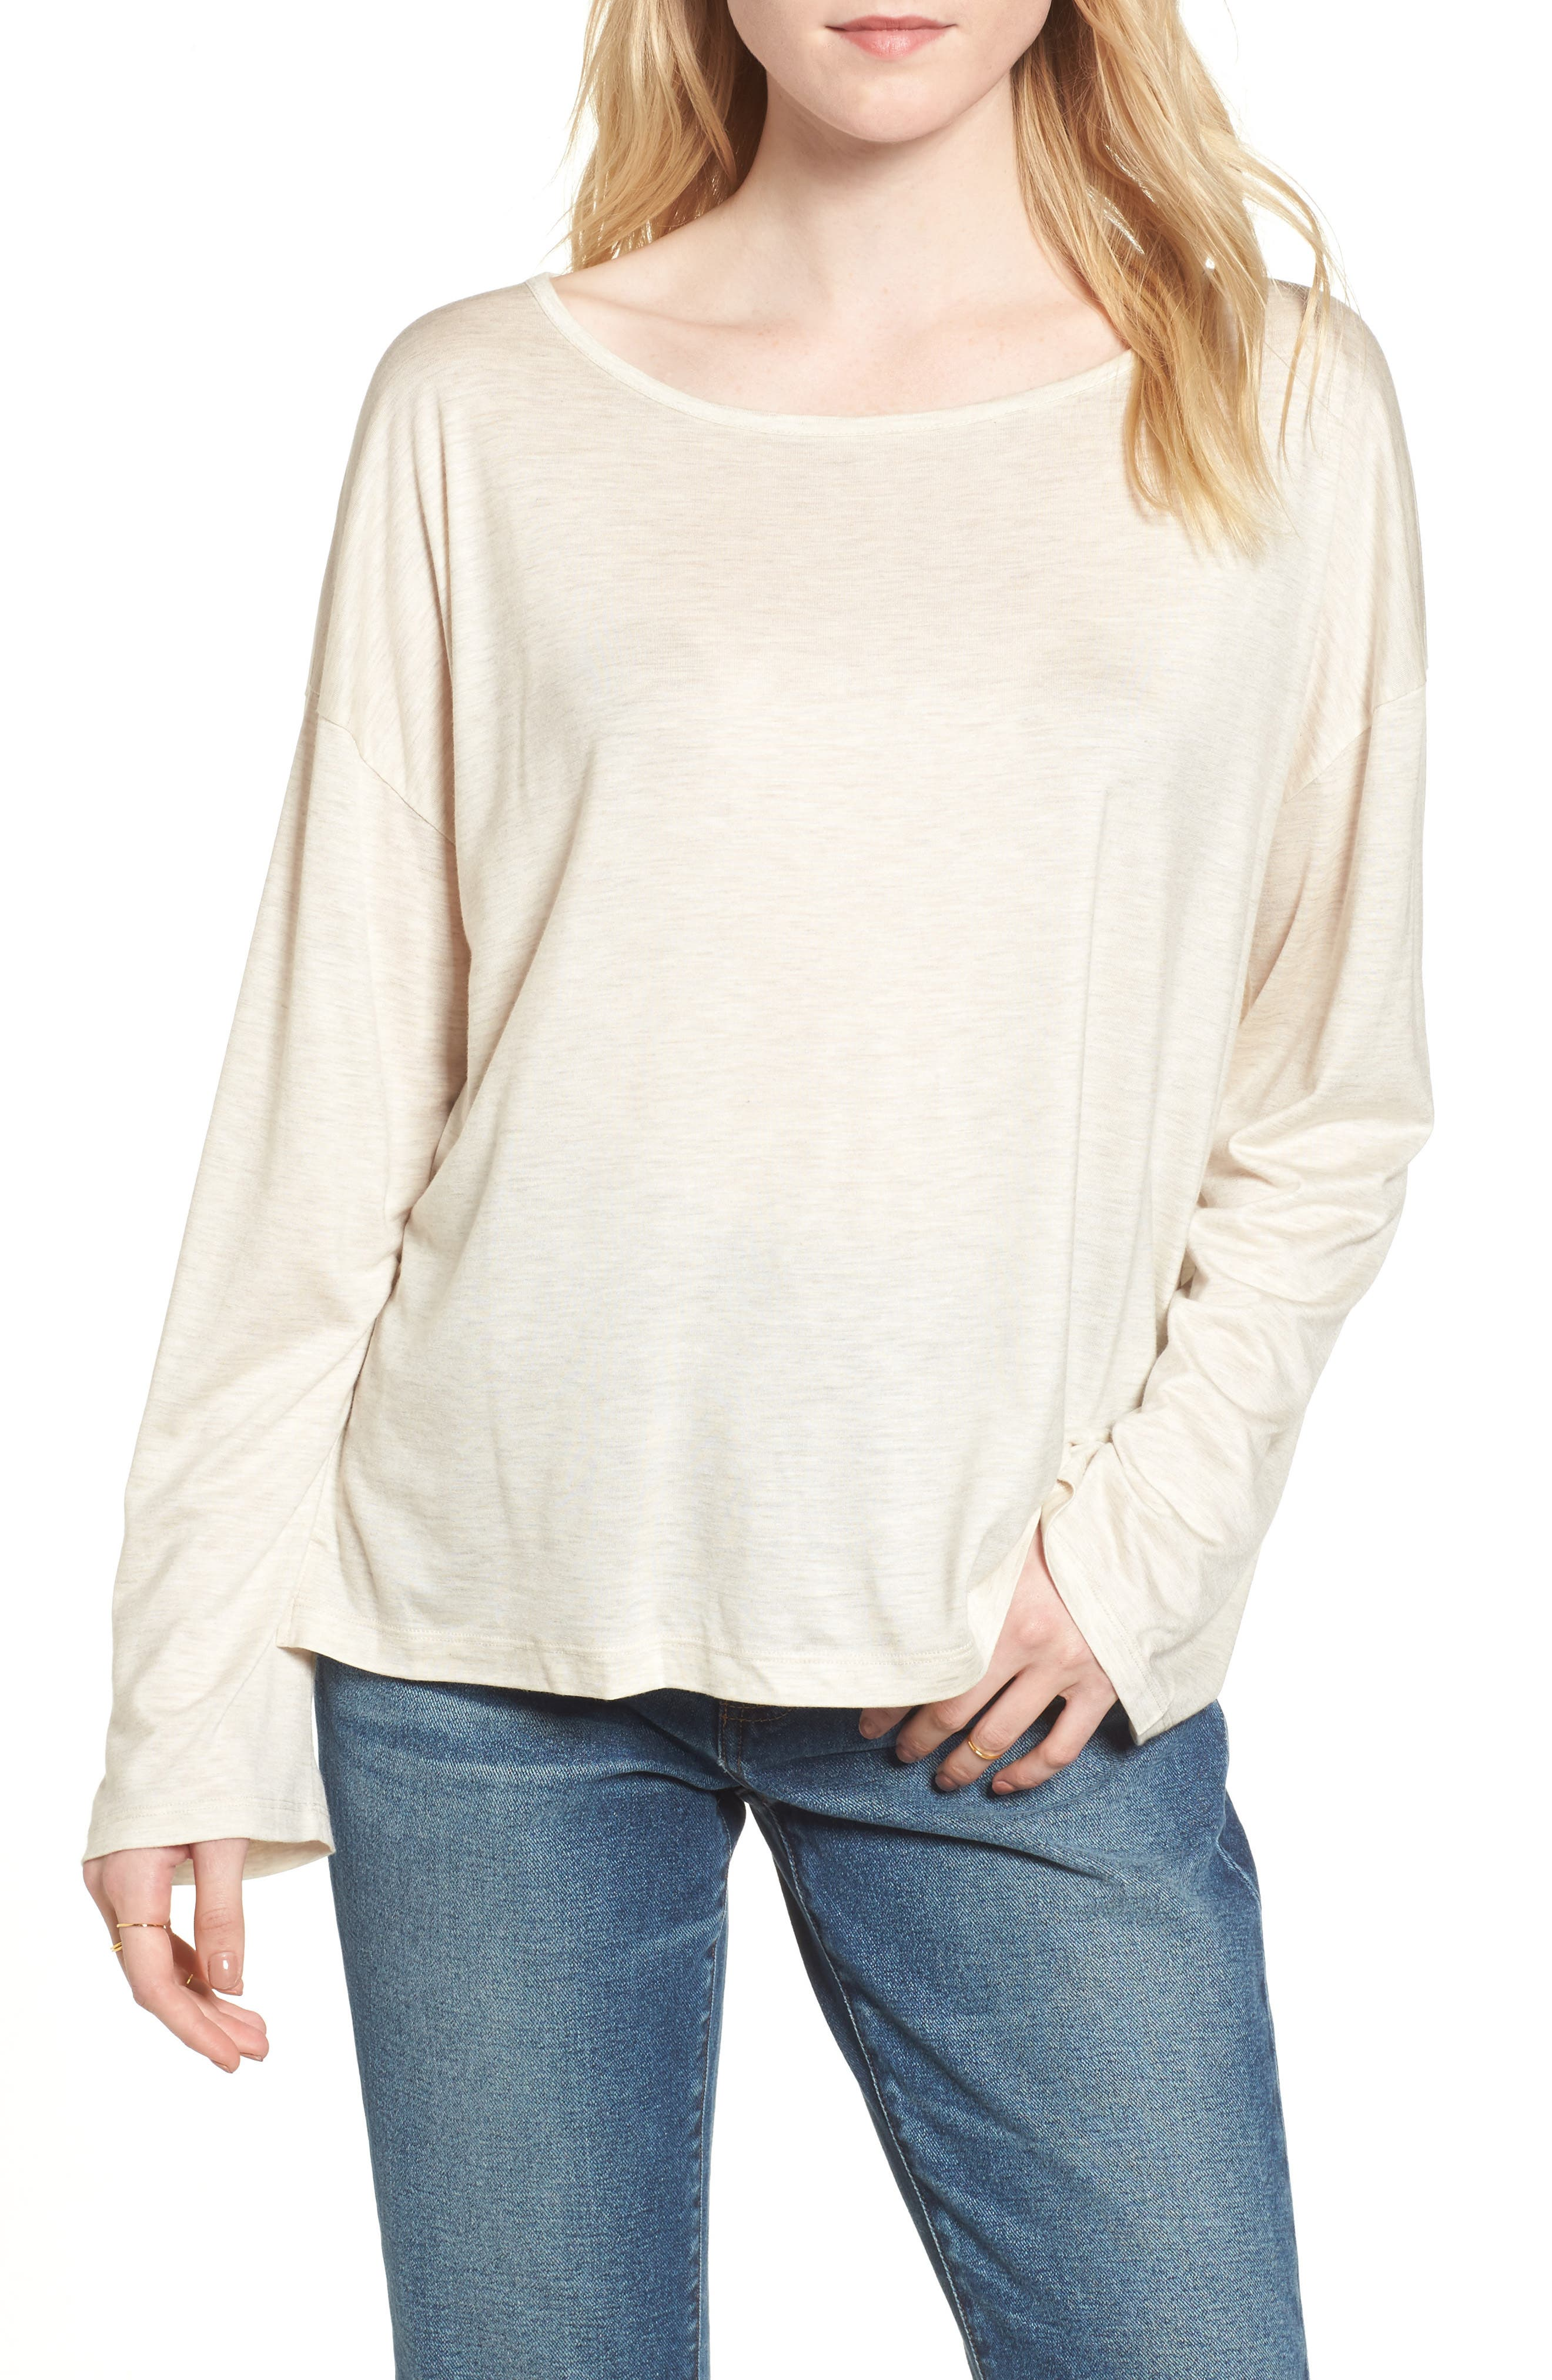 Libretto Wide Sleeve Top,                         Main,                         color, Heather Dune